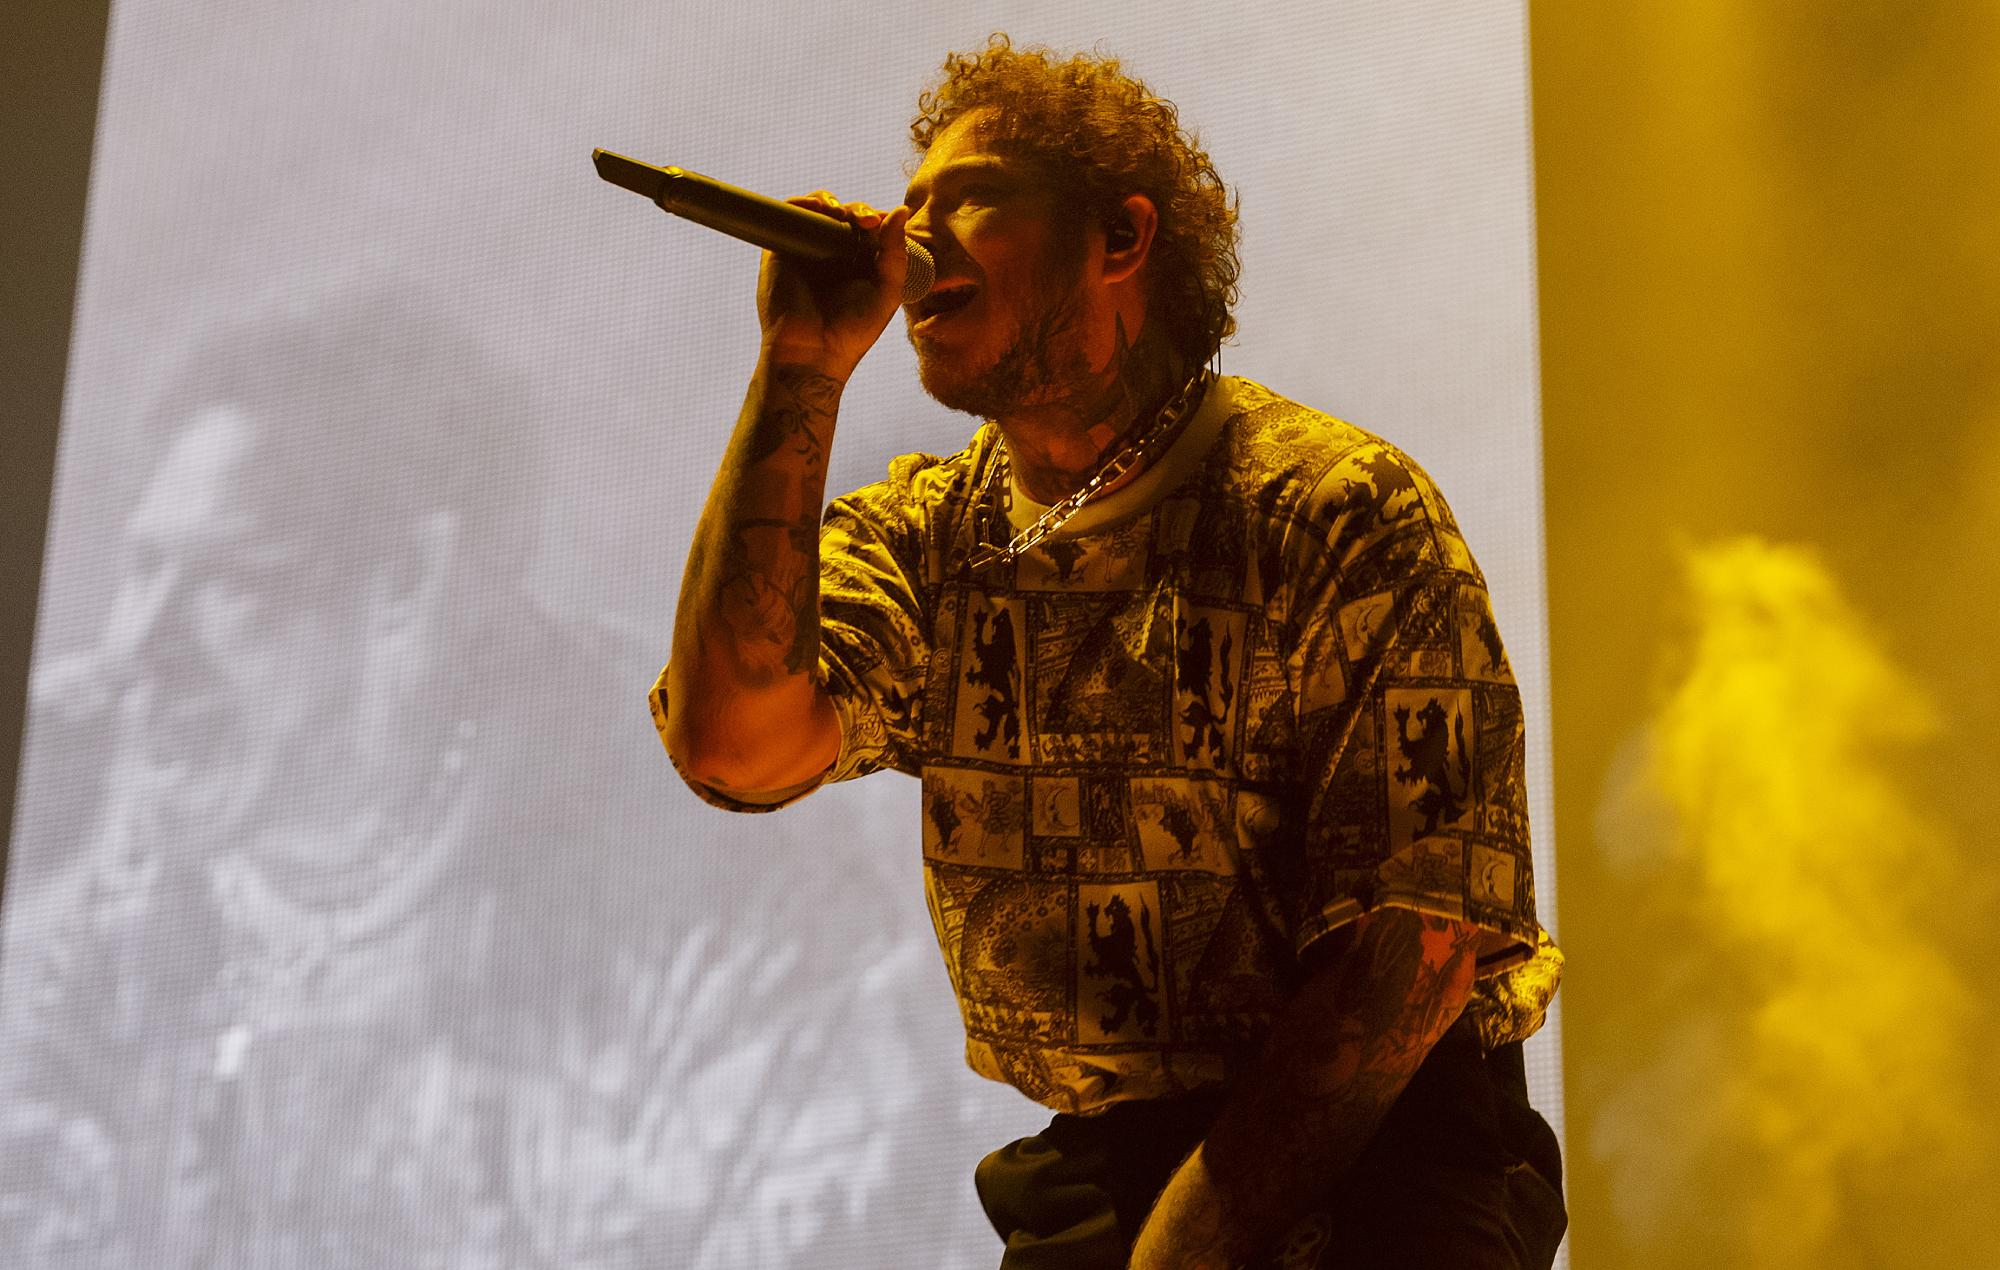 Post Malone to release new song 'Motley Crew' this week – hear snippet